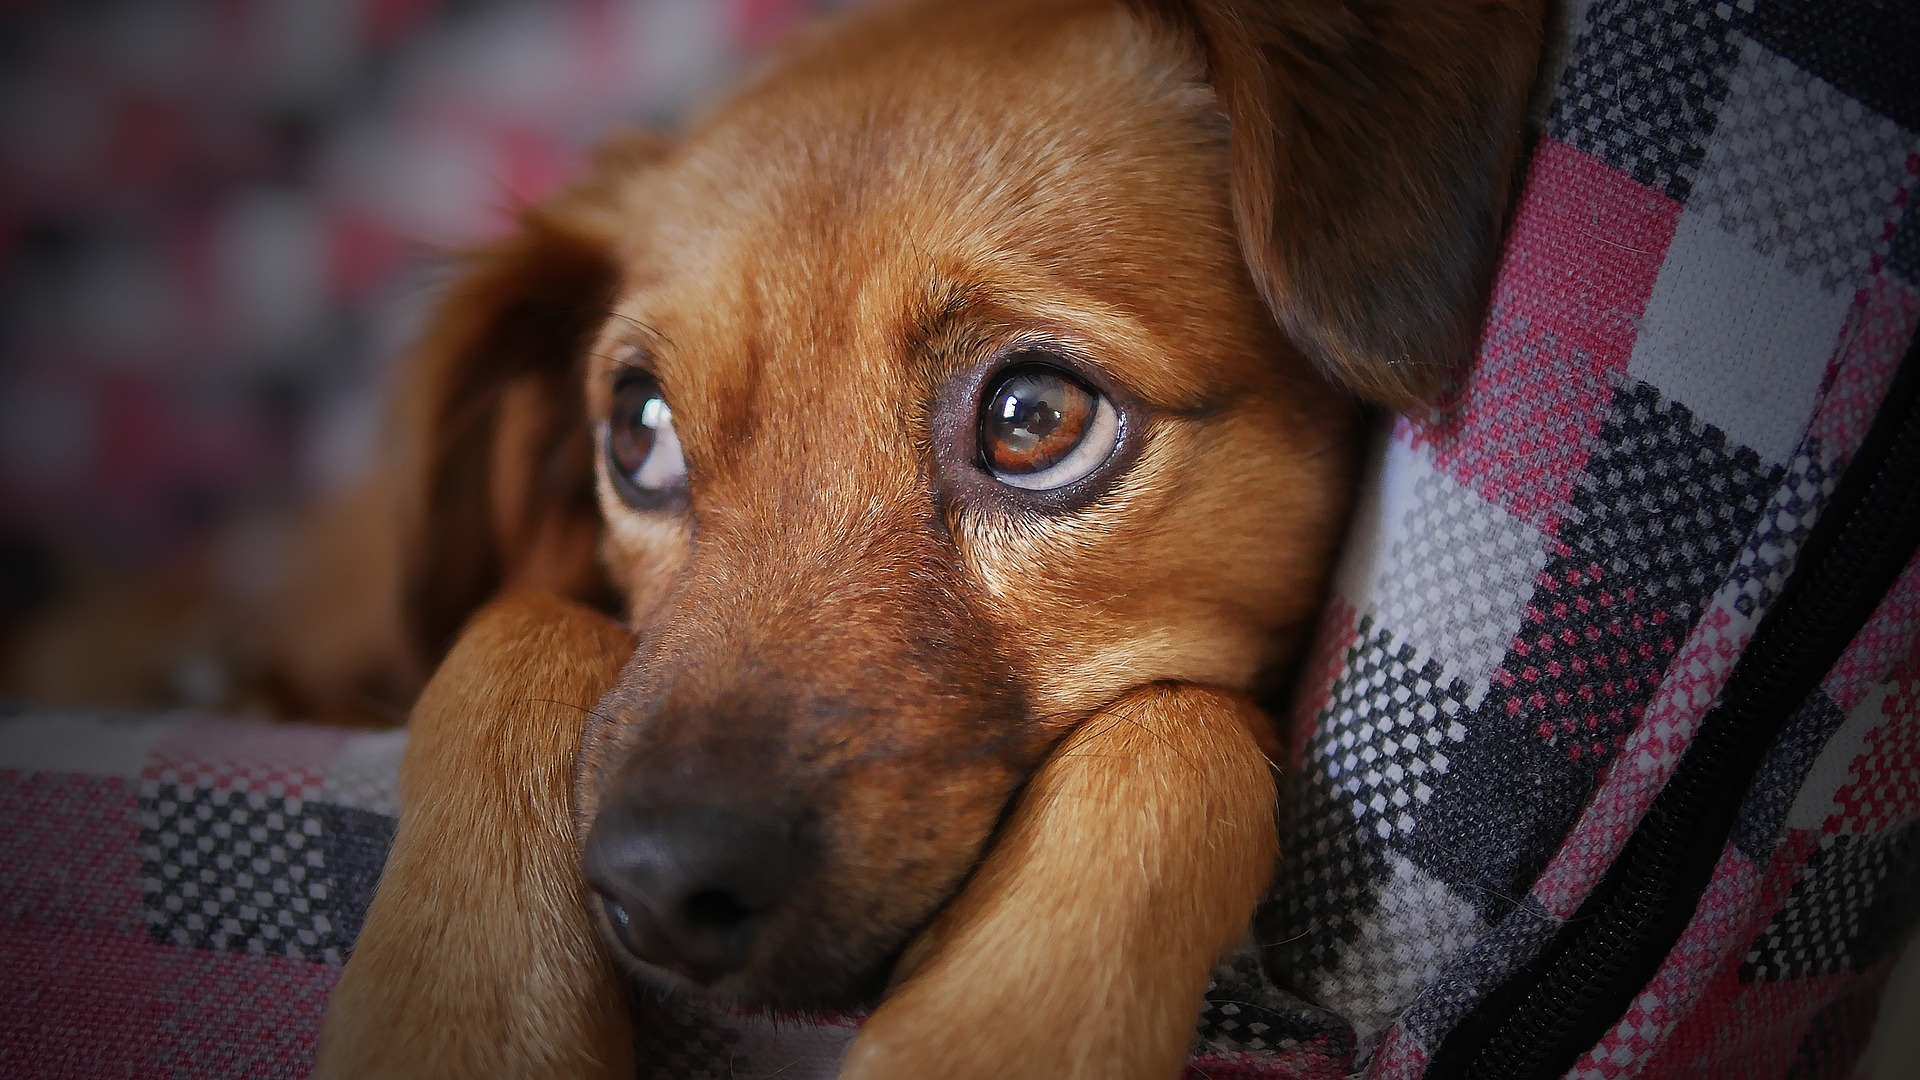 feeding tubes in cats and dogs - brown dog with sad eyes lying on couch under a blanket